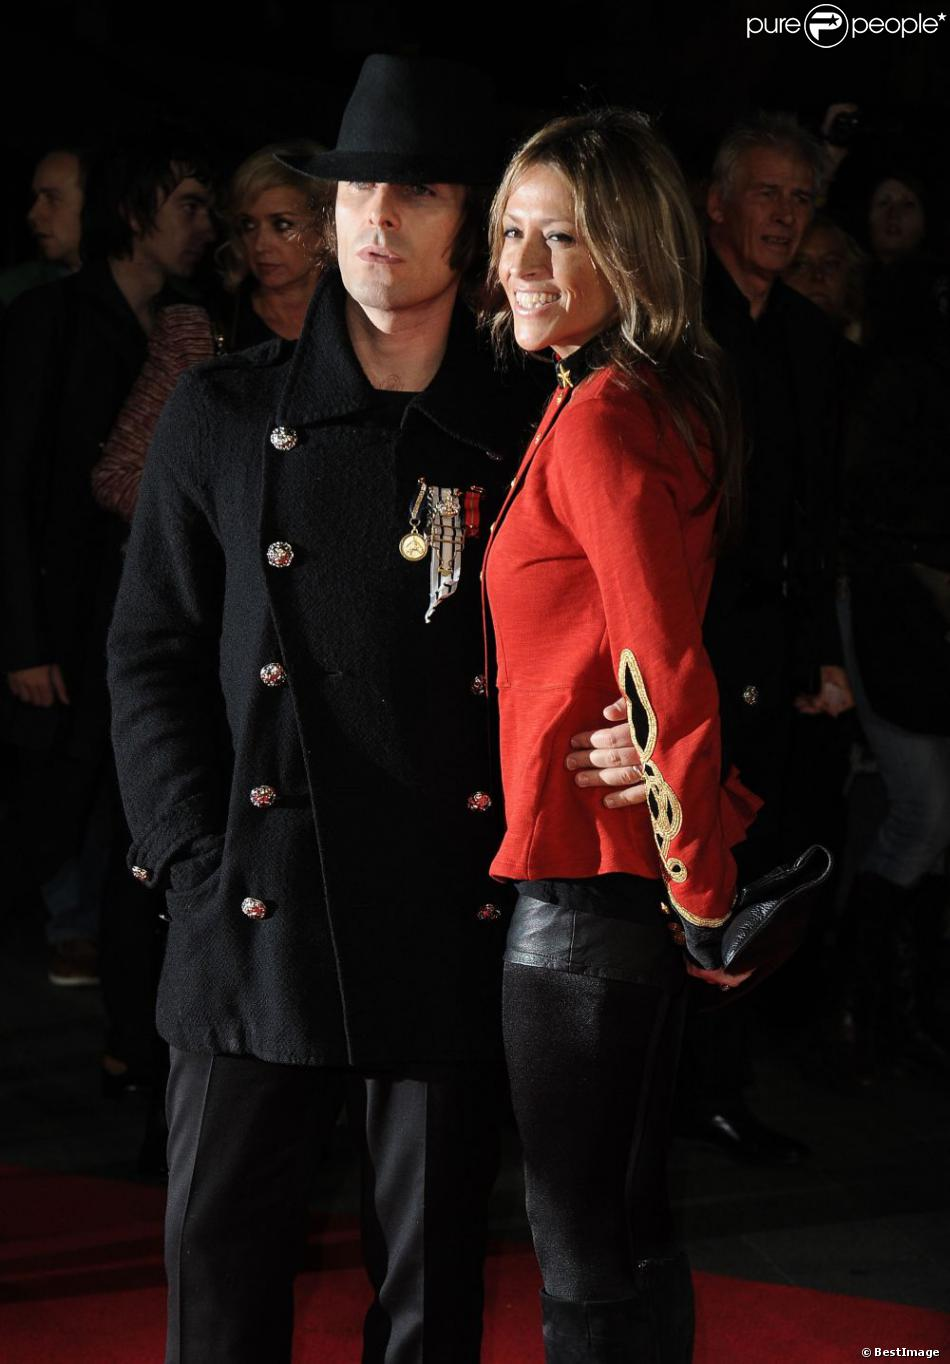 Nicole Appleton et Liam Gallagher à Londres, le 18 octobre 2012.